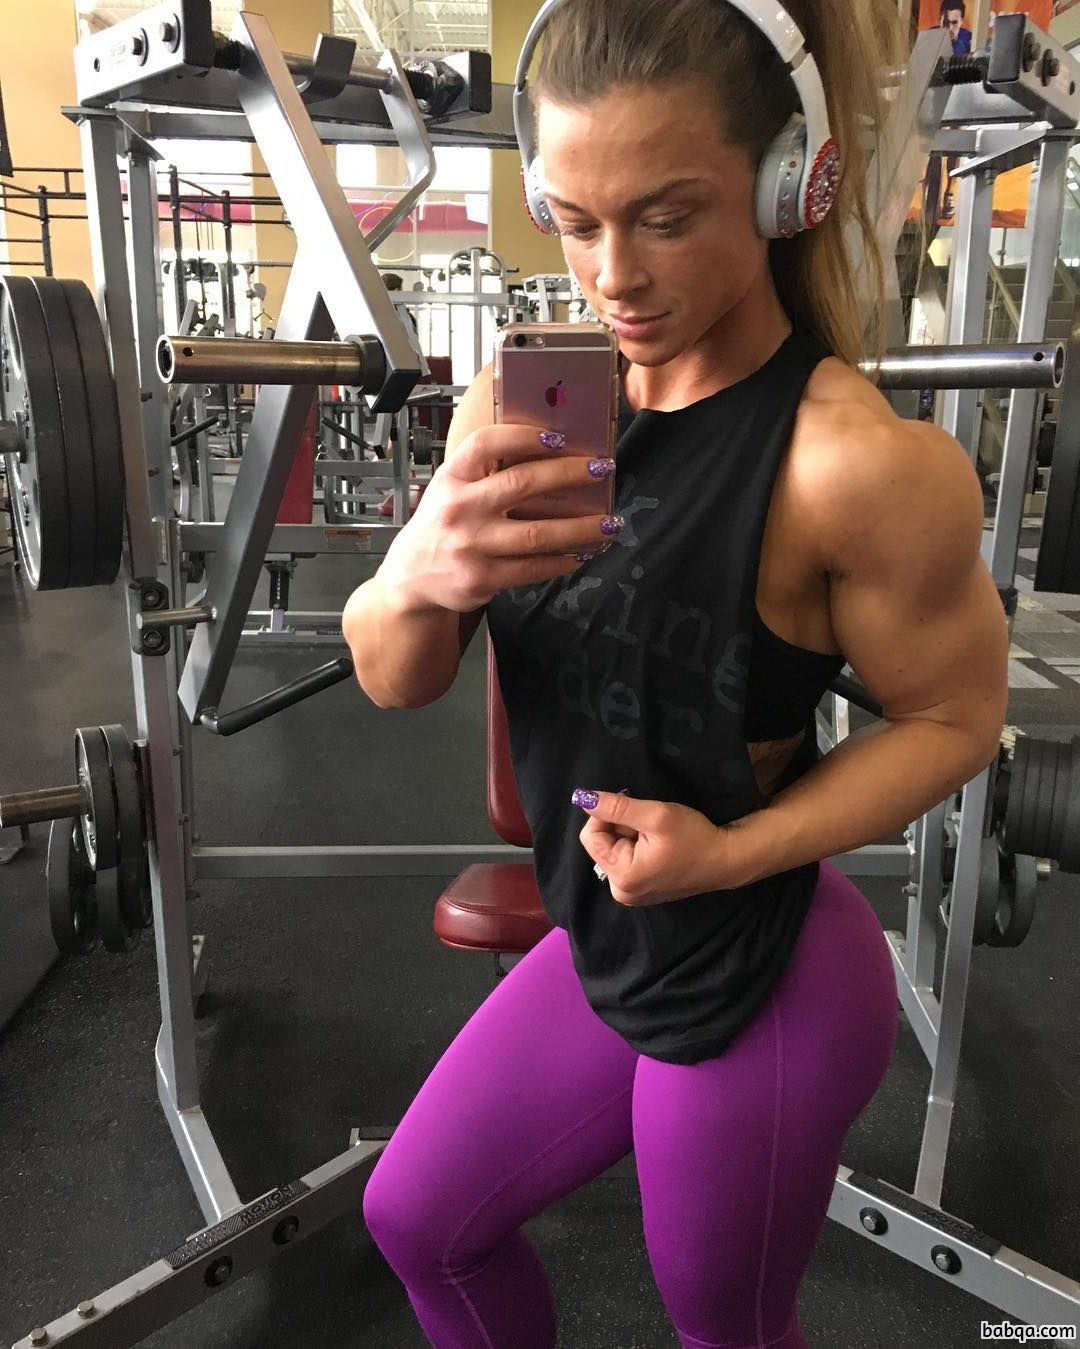 cute chick with fitness body and toned biceps pic from reddit